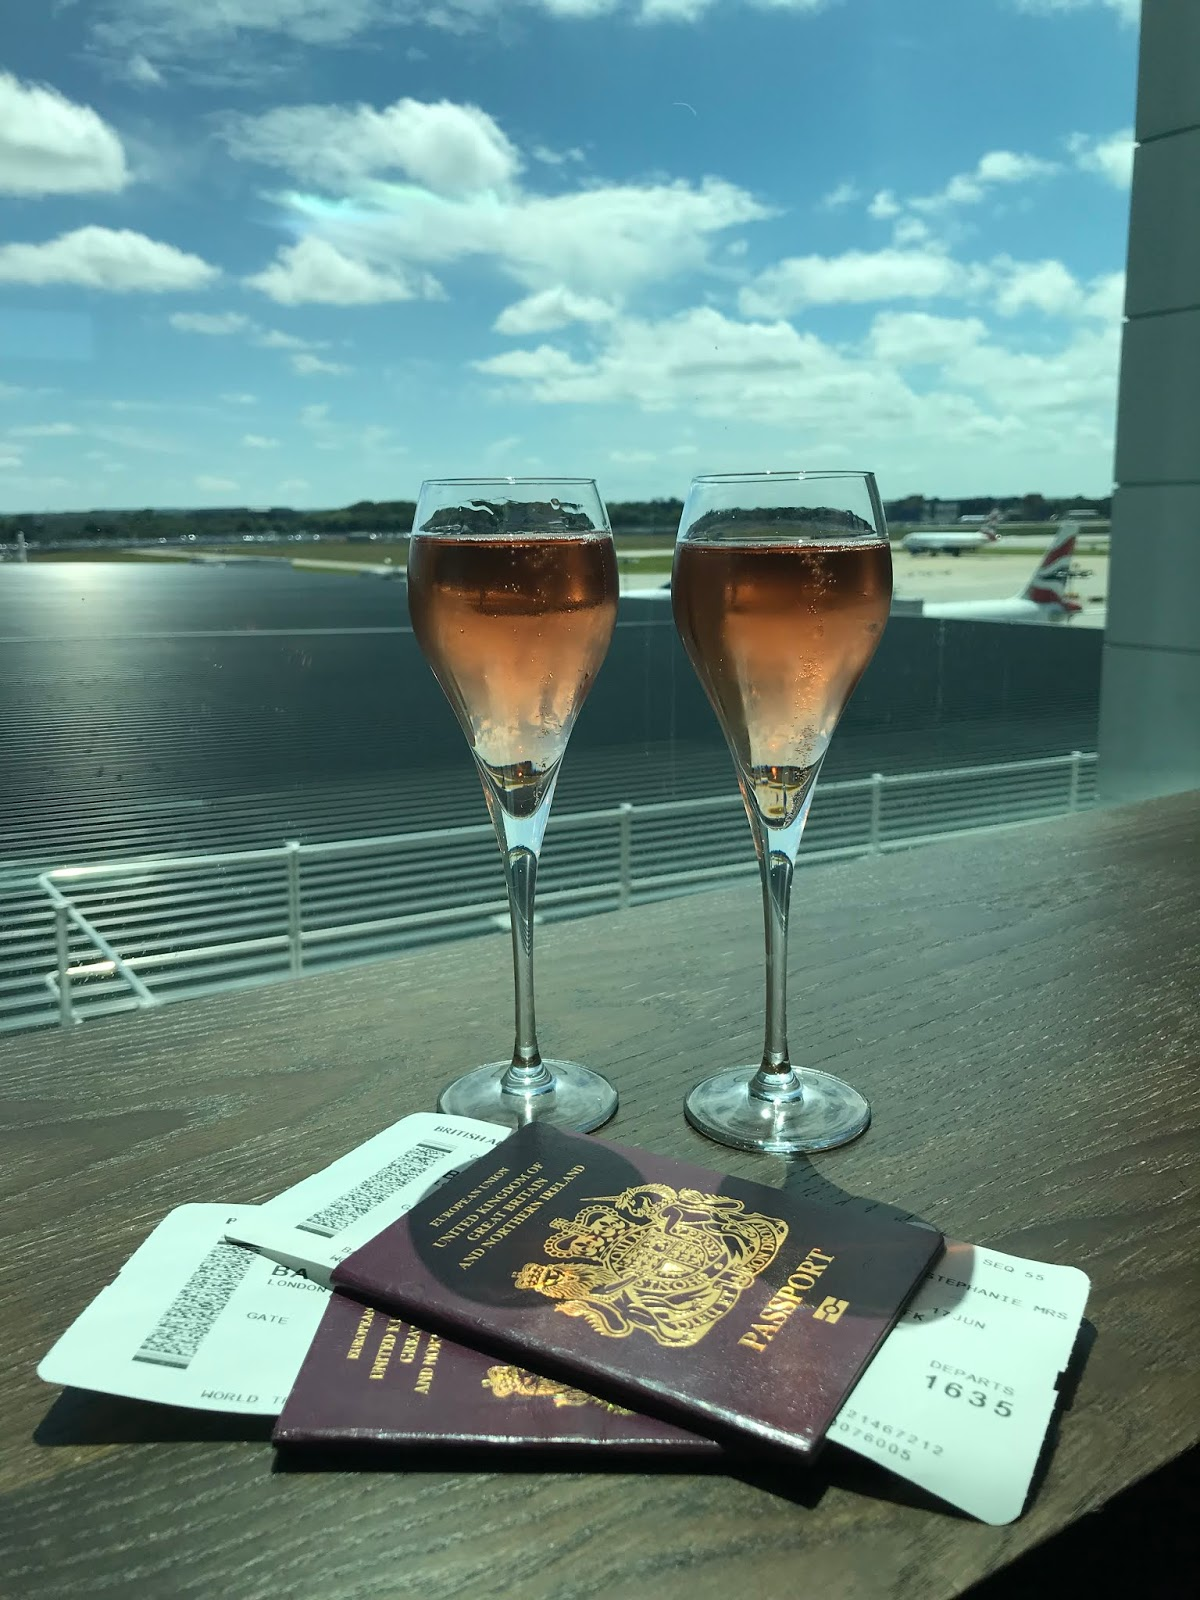 Gatwick airport lounge ready for take off to New York with champagne and a view